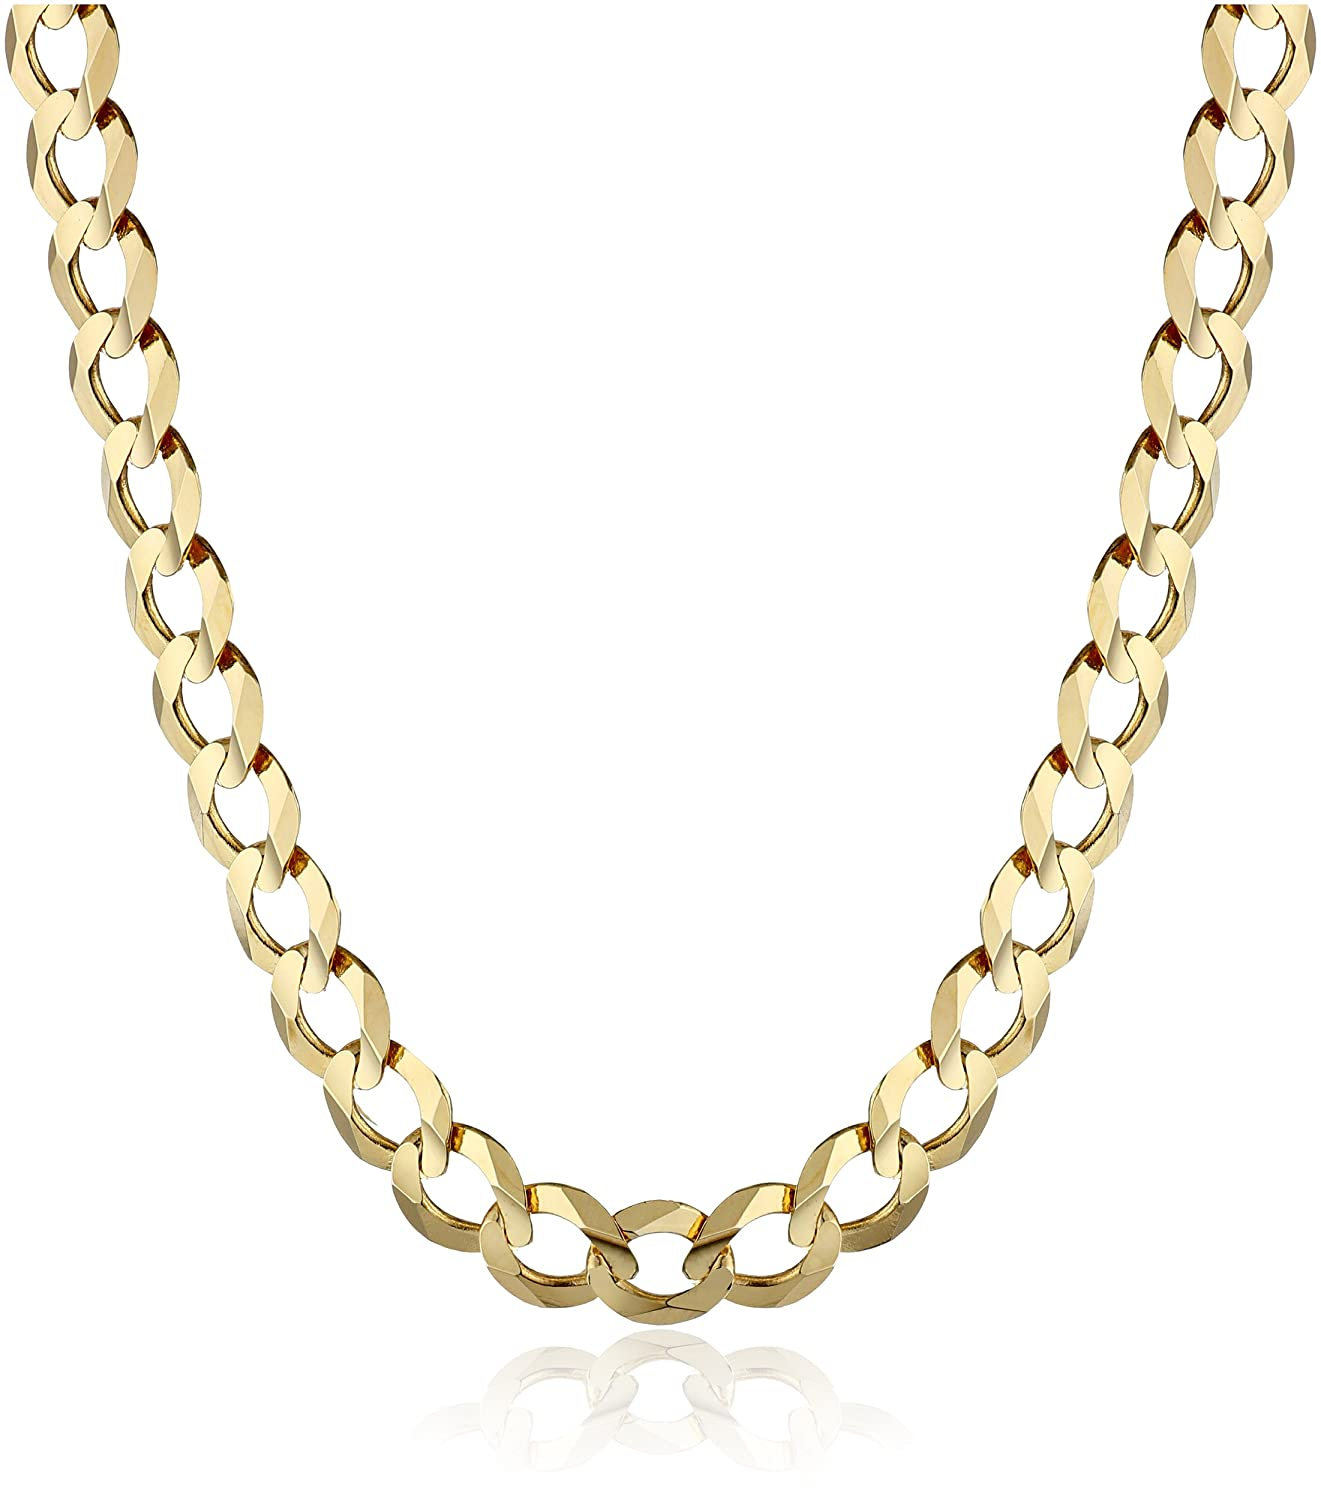 silver dhgate from miami link mens gold com men product cuban necklace s chain sterling